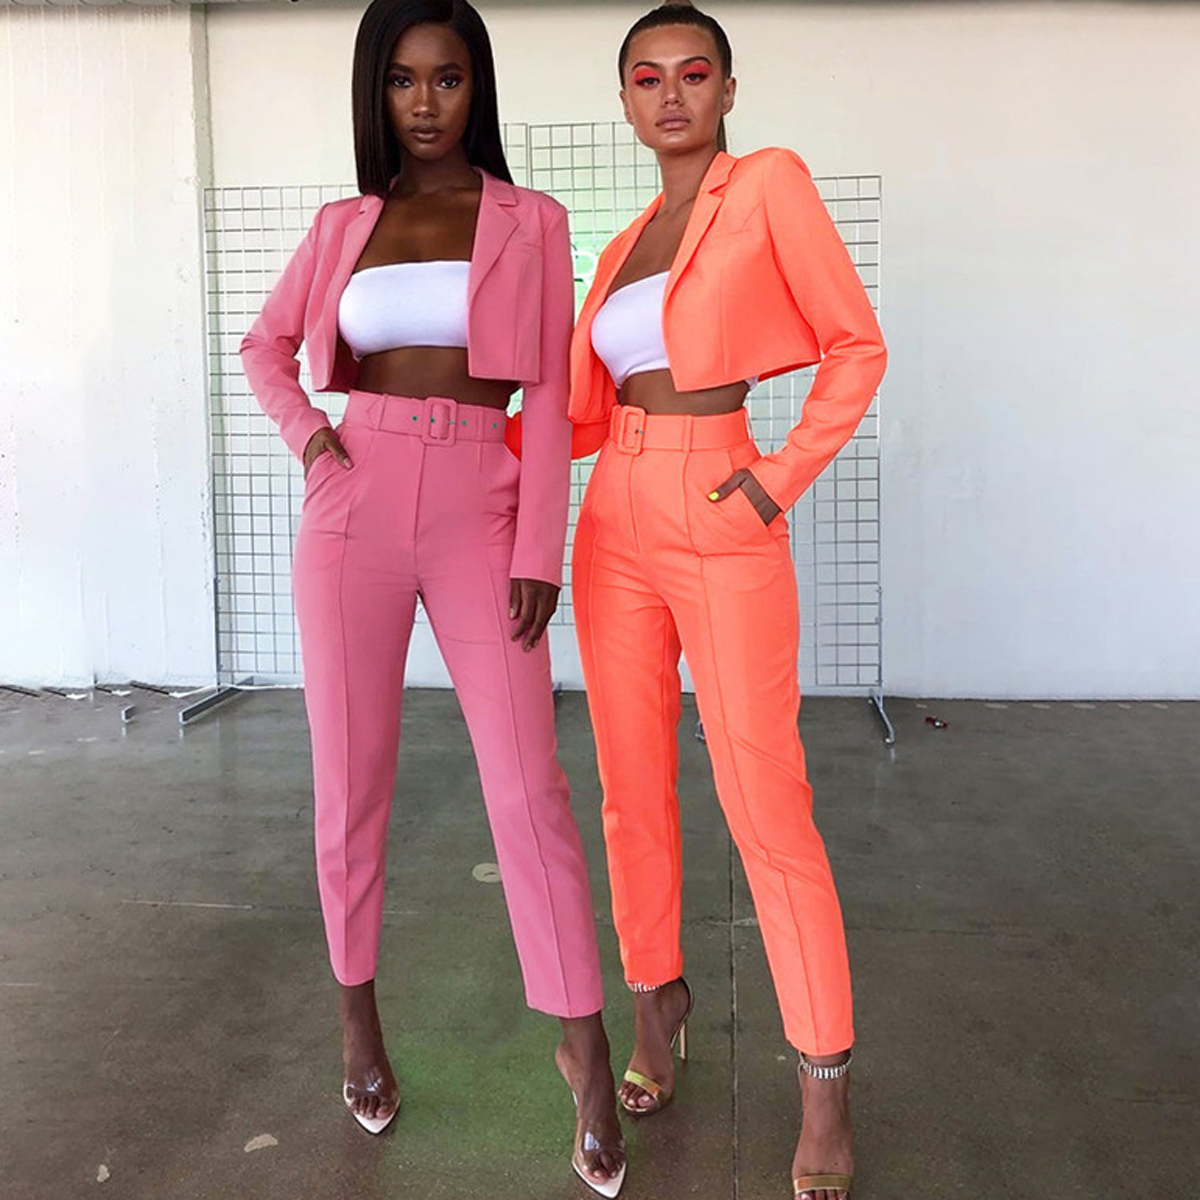 Fashion Women 2pcs Clothes Sets Long Sleeve Tracksuit Tops + Long Pants With Belt Outfits Party Streetwear Office Ladies OL Suit